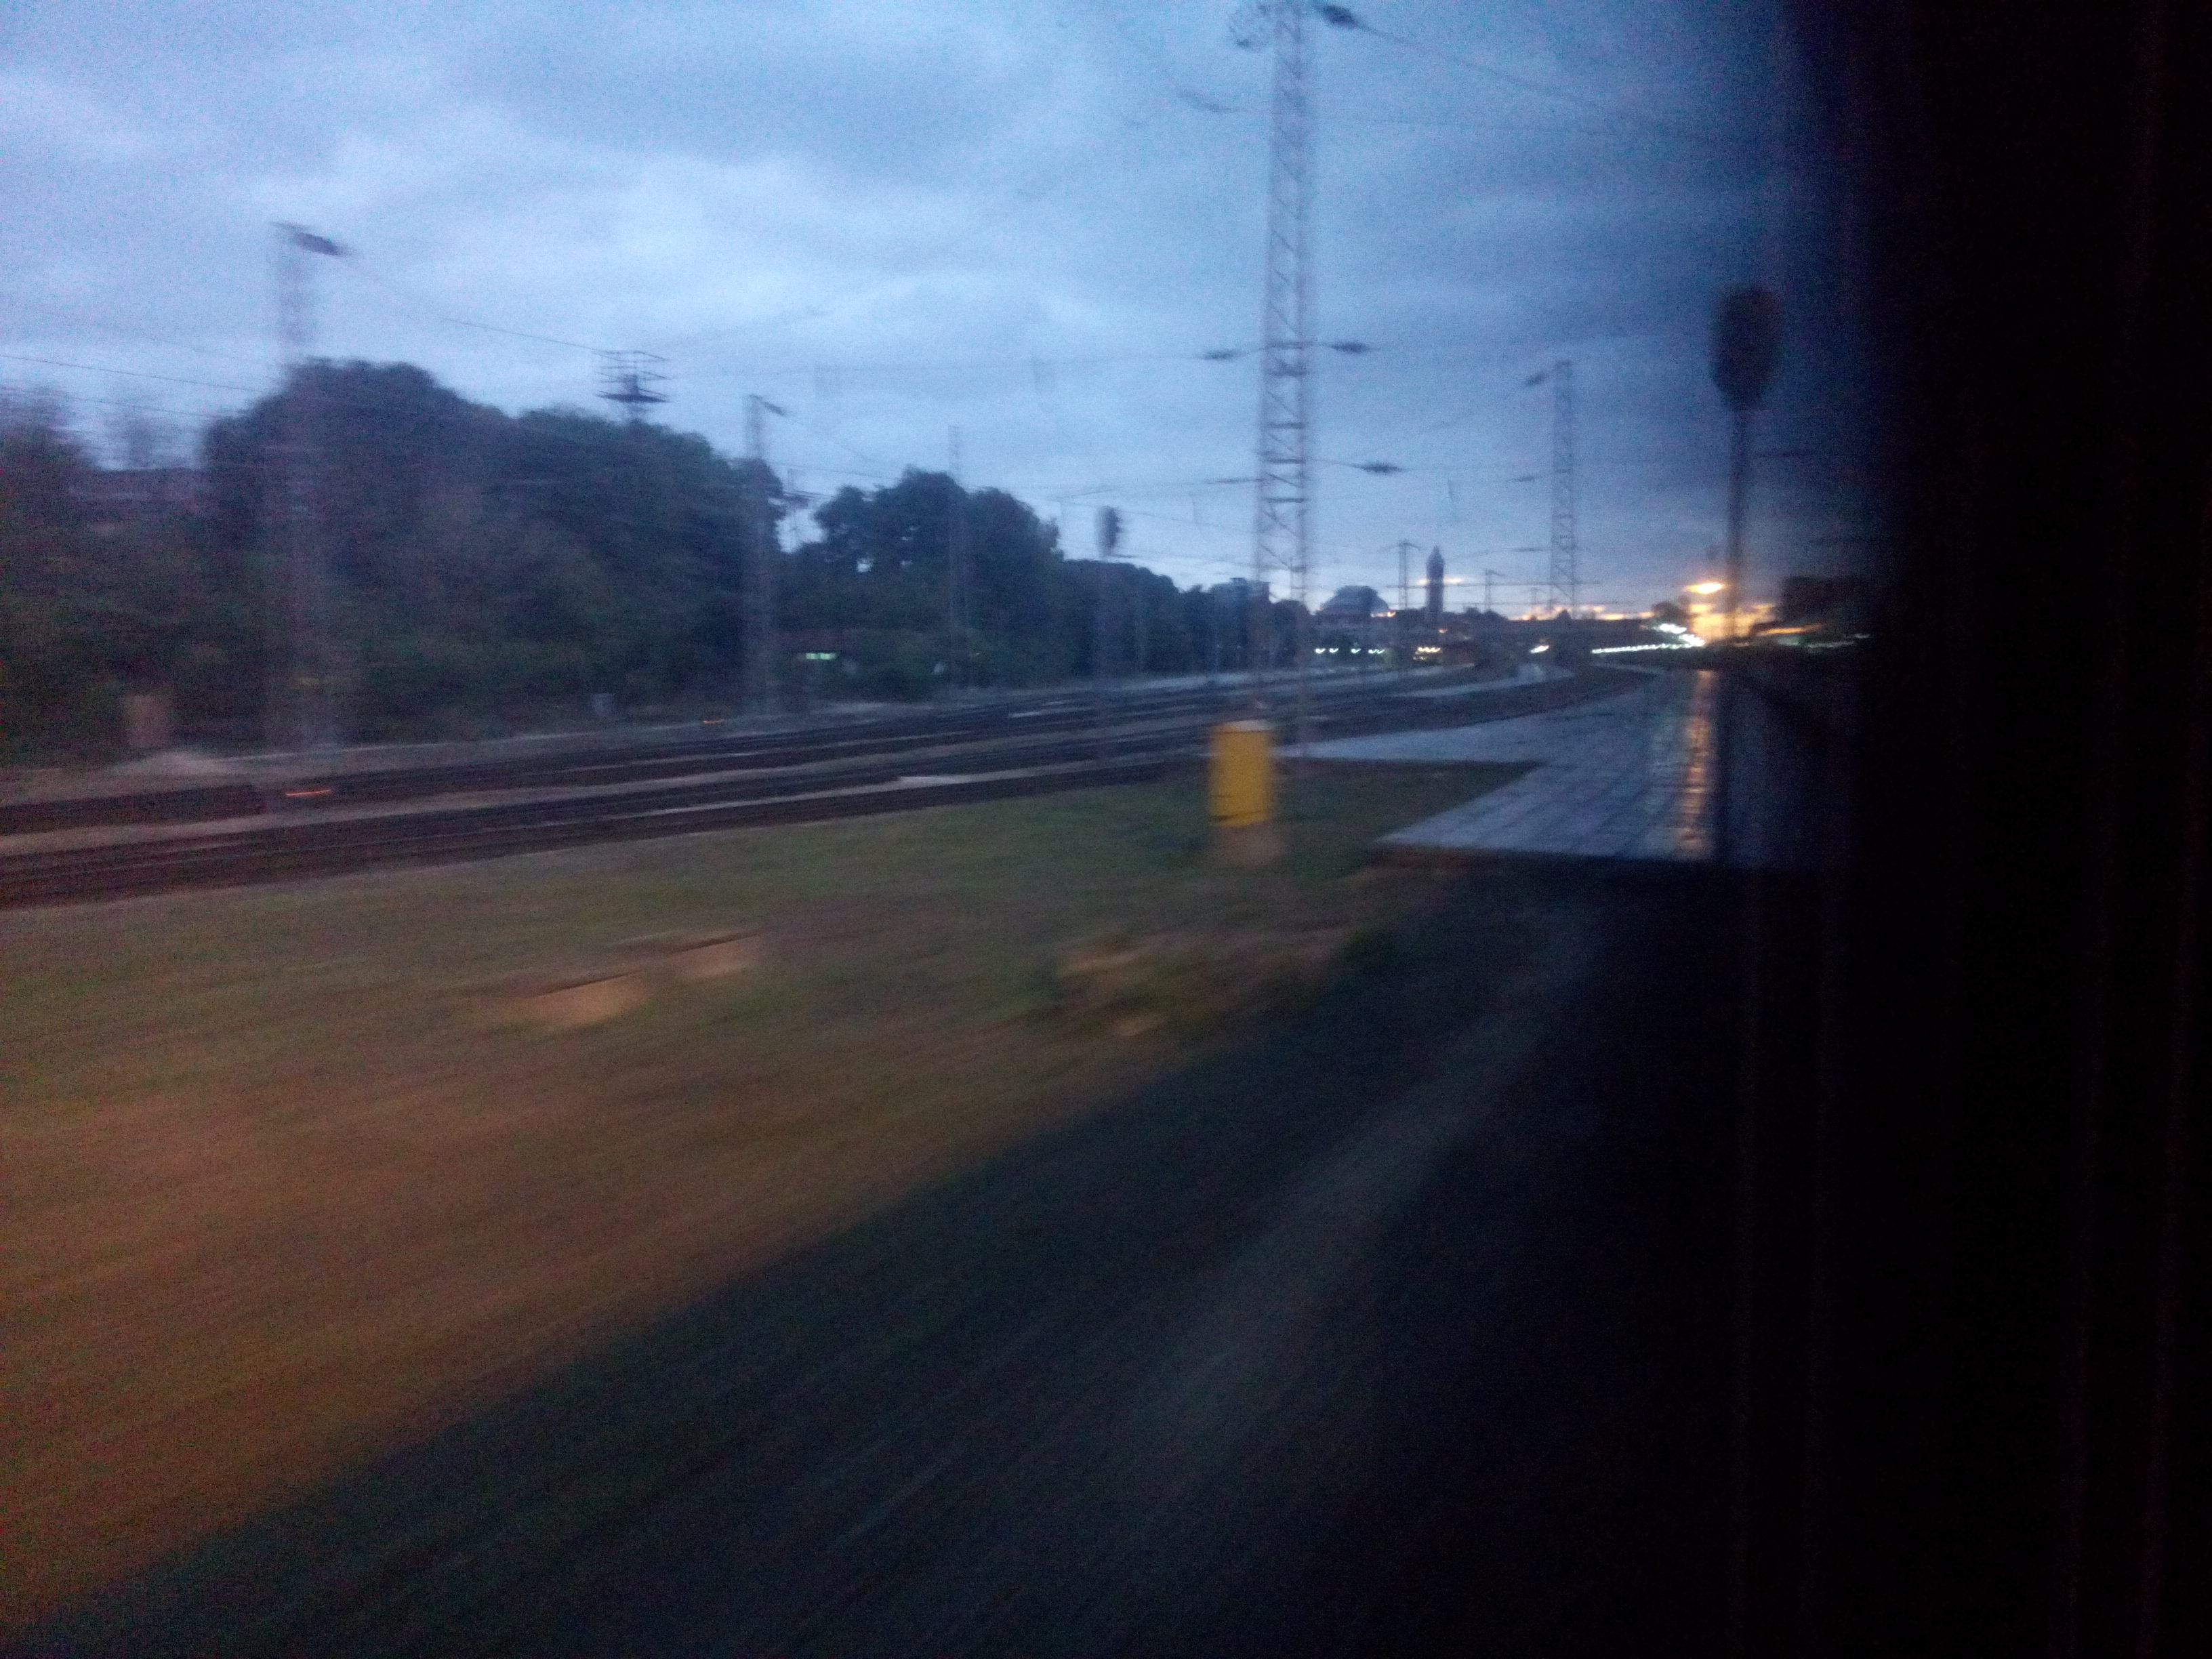 View from a train window onto tracks, with pale sunrise in the distance